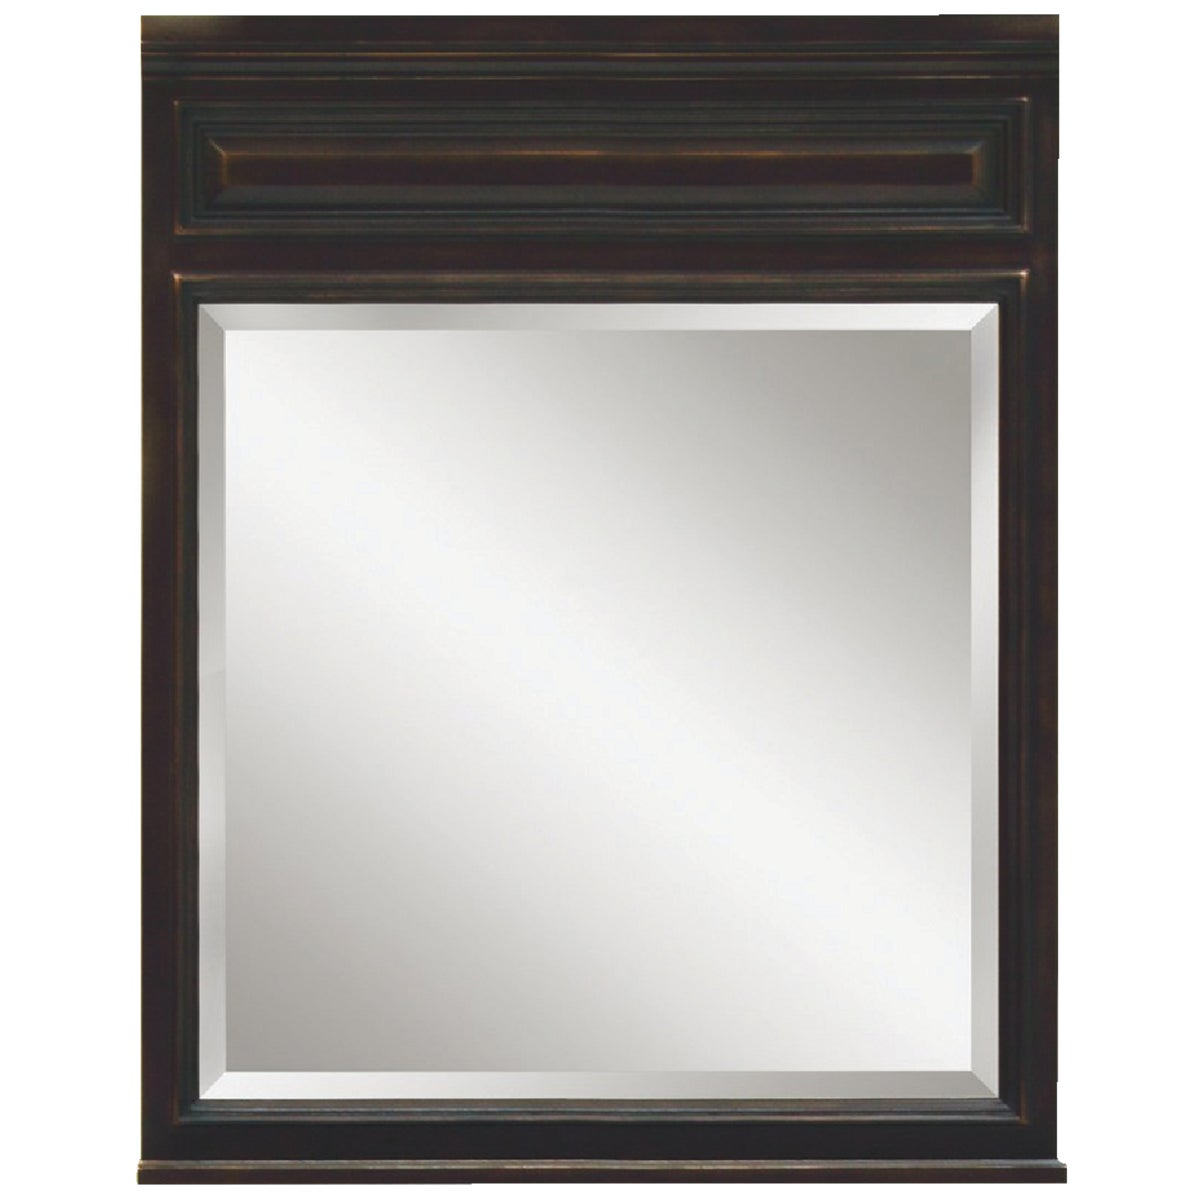 BH 30X38 MIRROR - BH3038MR by Sunnywood Products